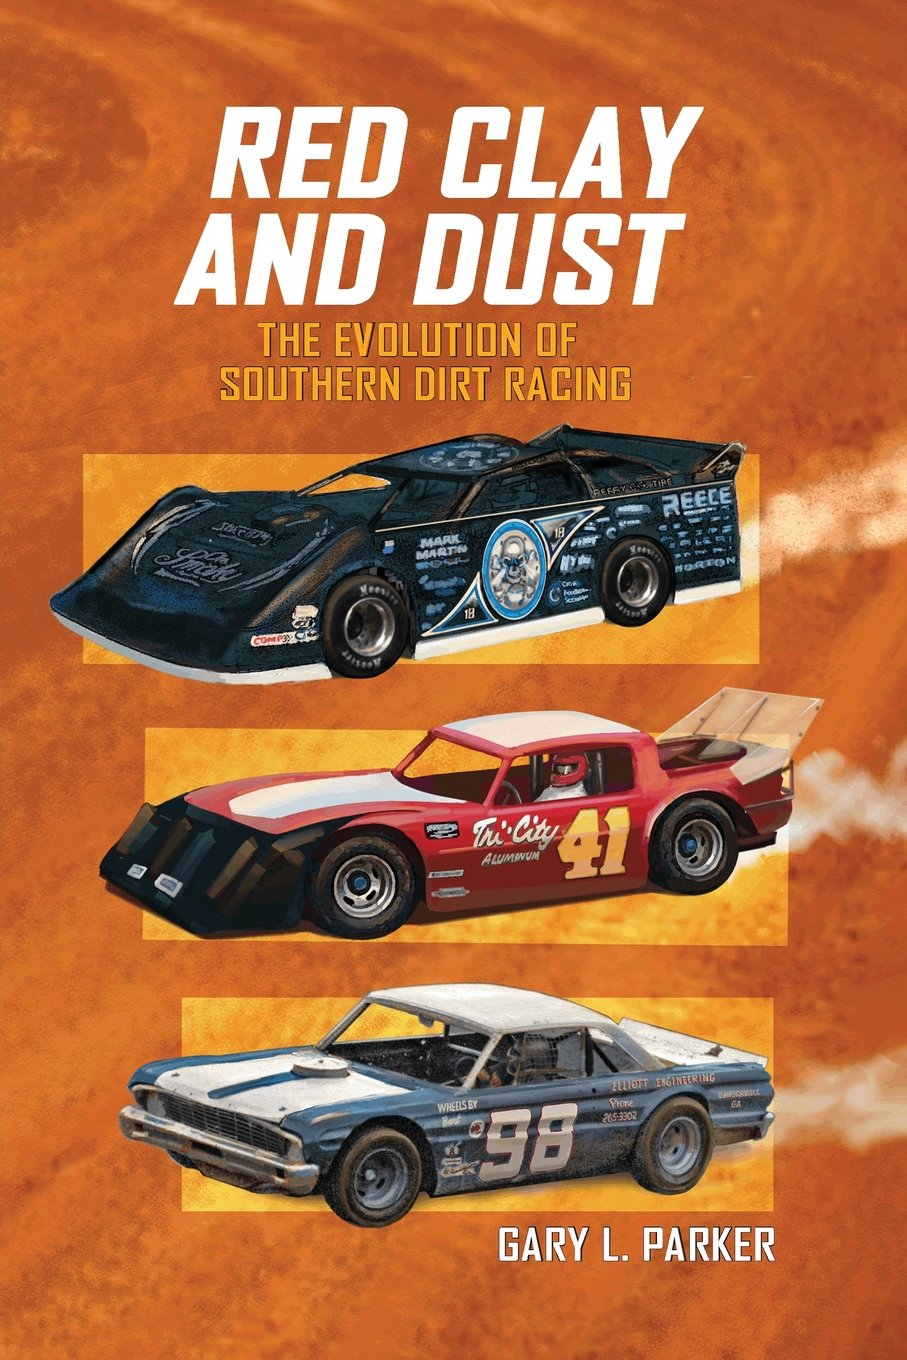 Red Clay and Dust: The Evolution of Southern Dirt Racing